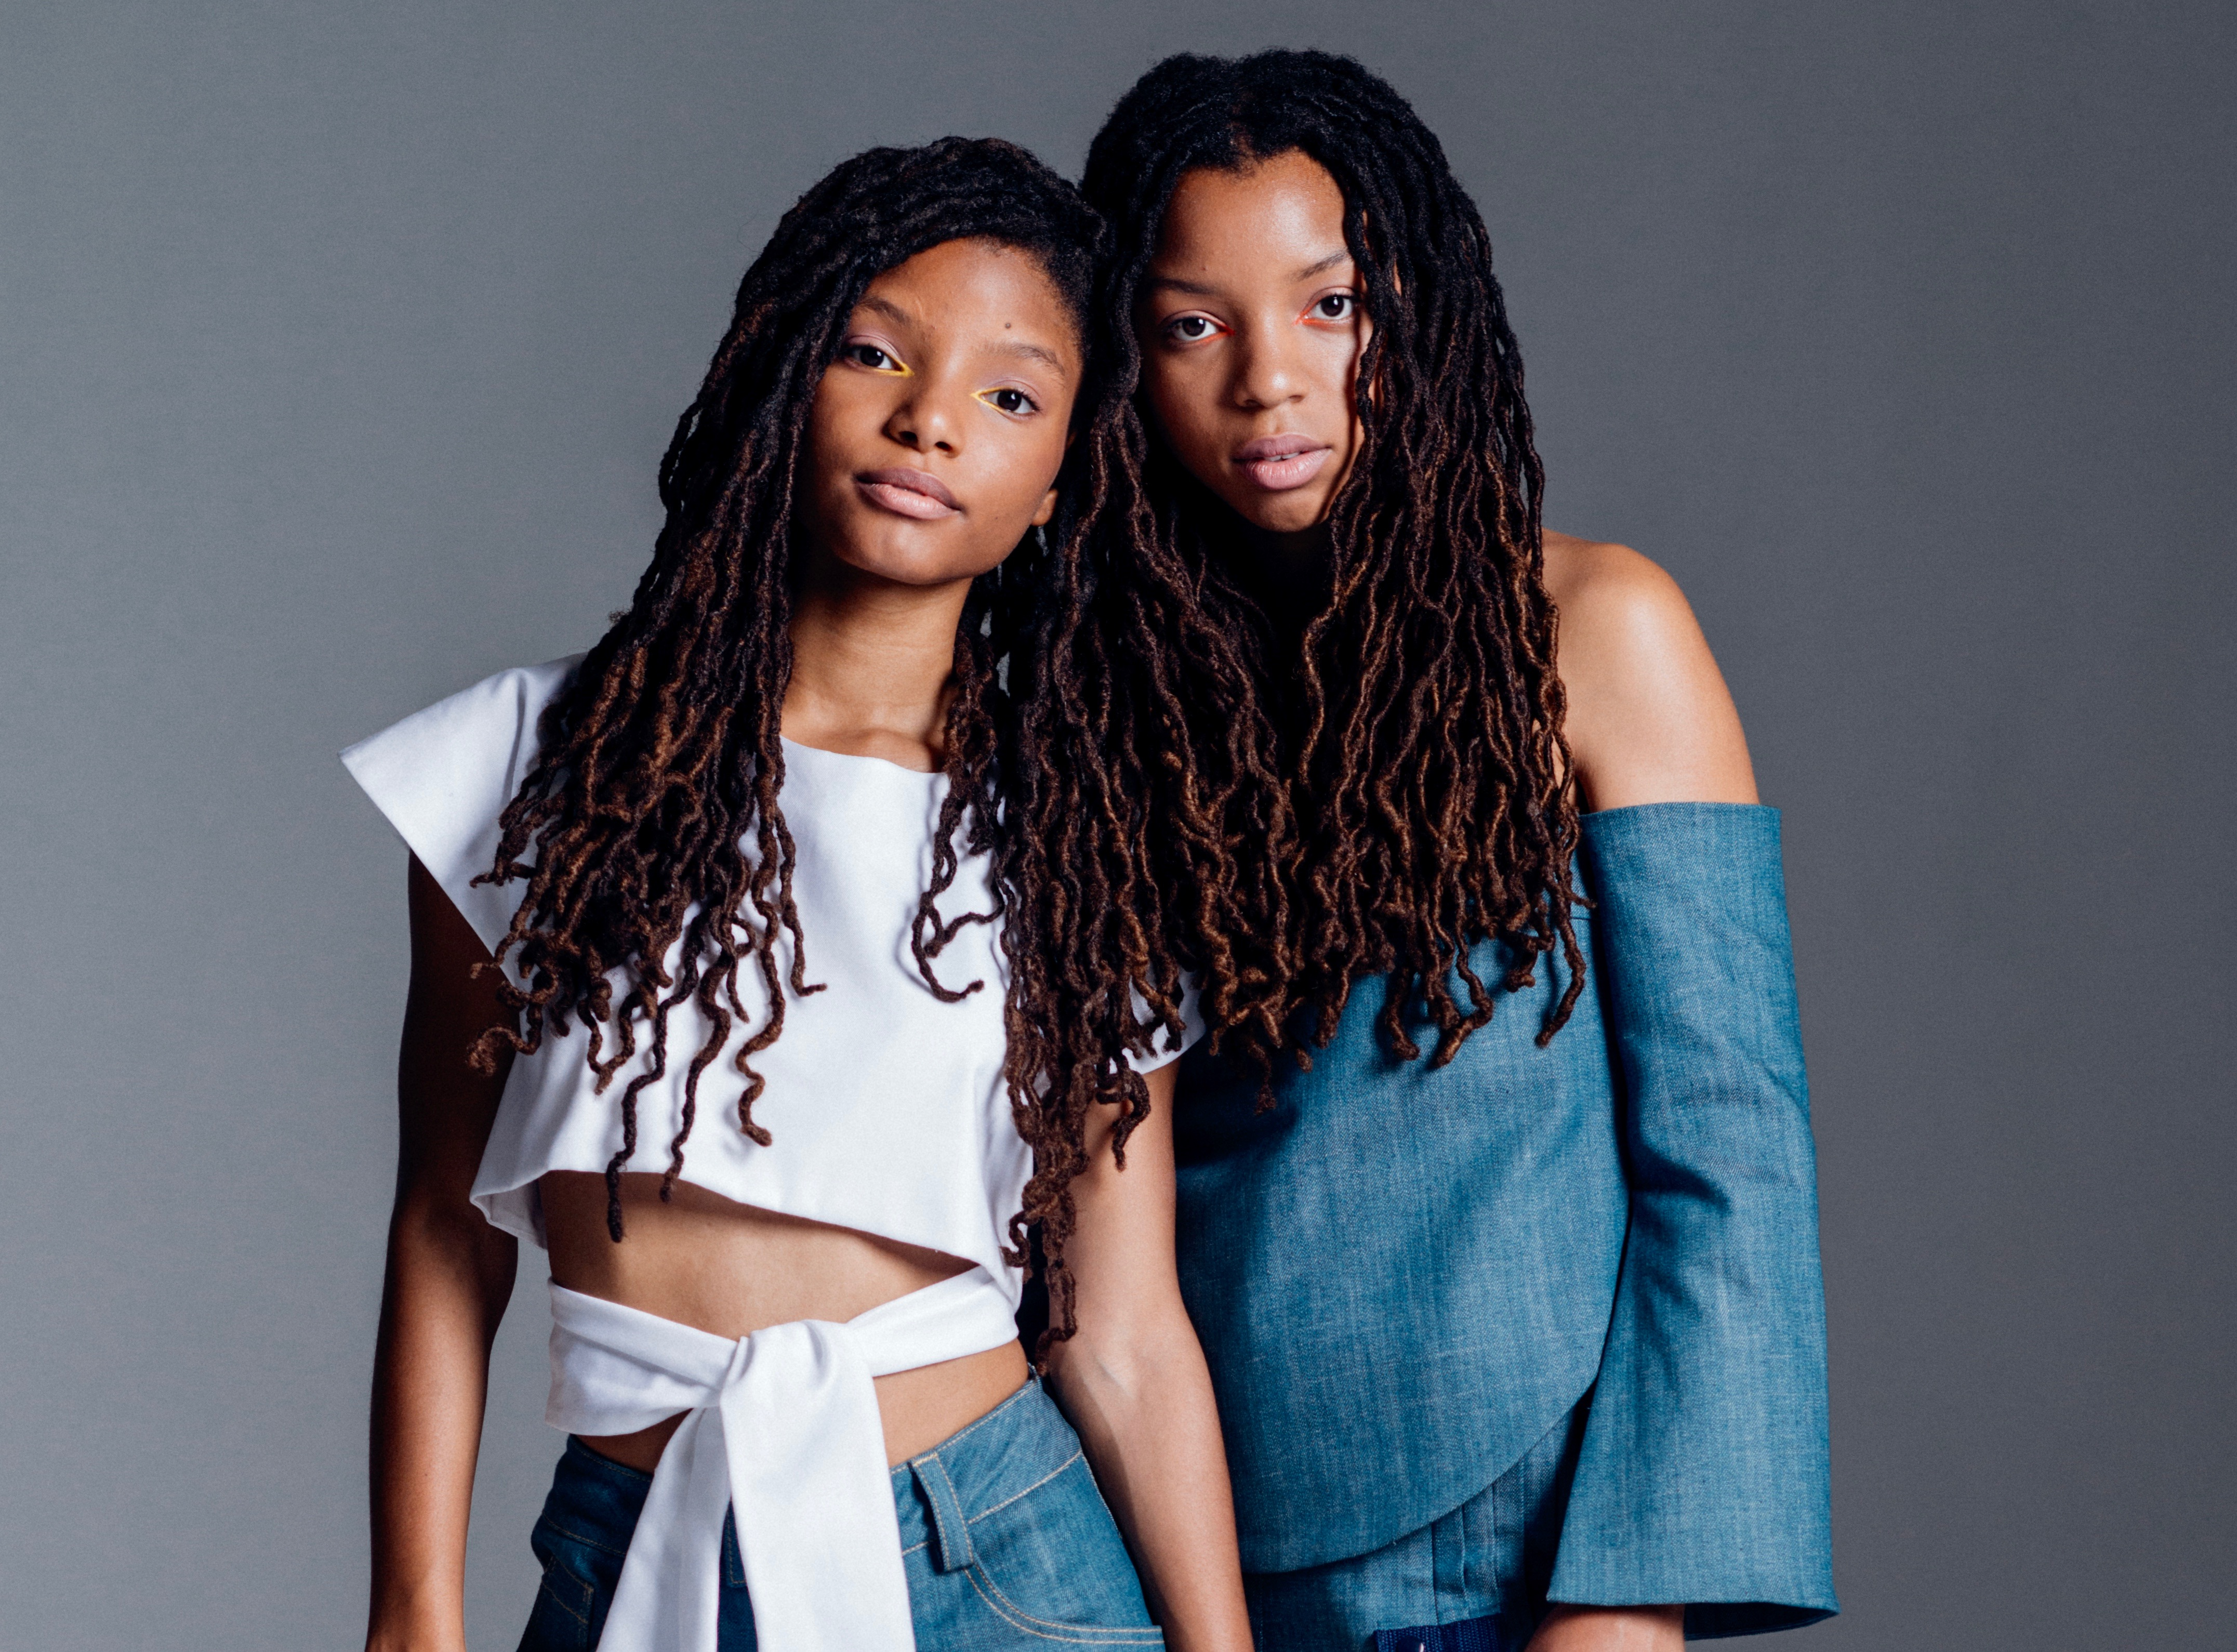 Chloe x Halle photographed by Delphine Diallo for Parkwood Entertainment